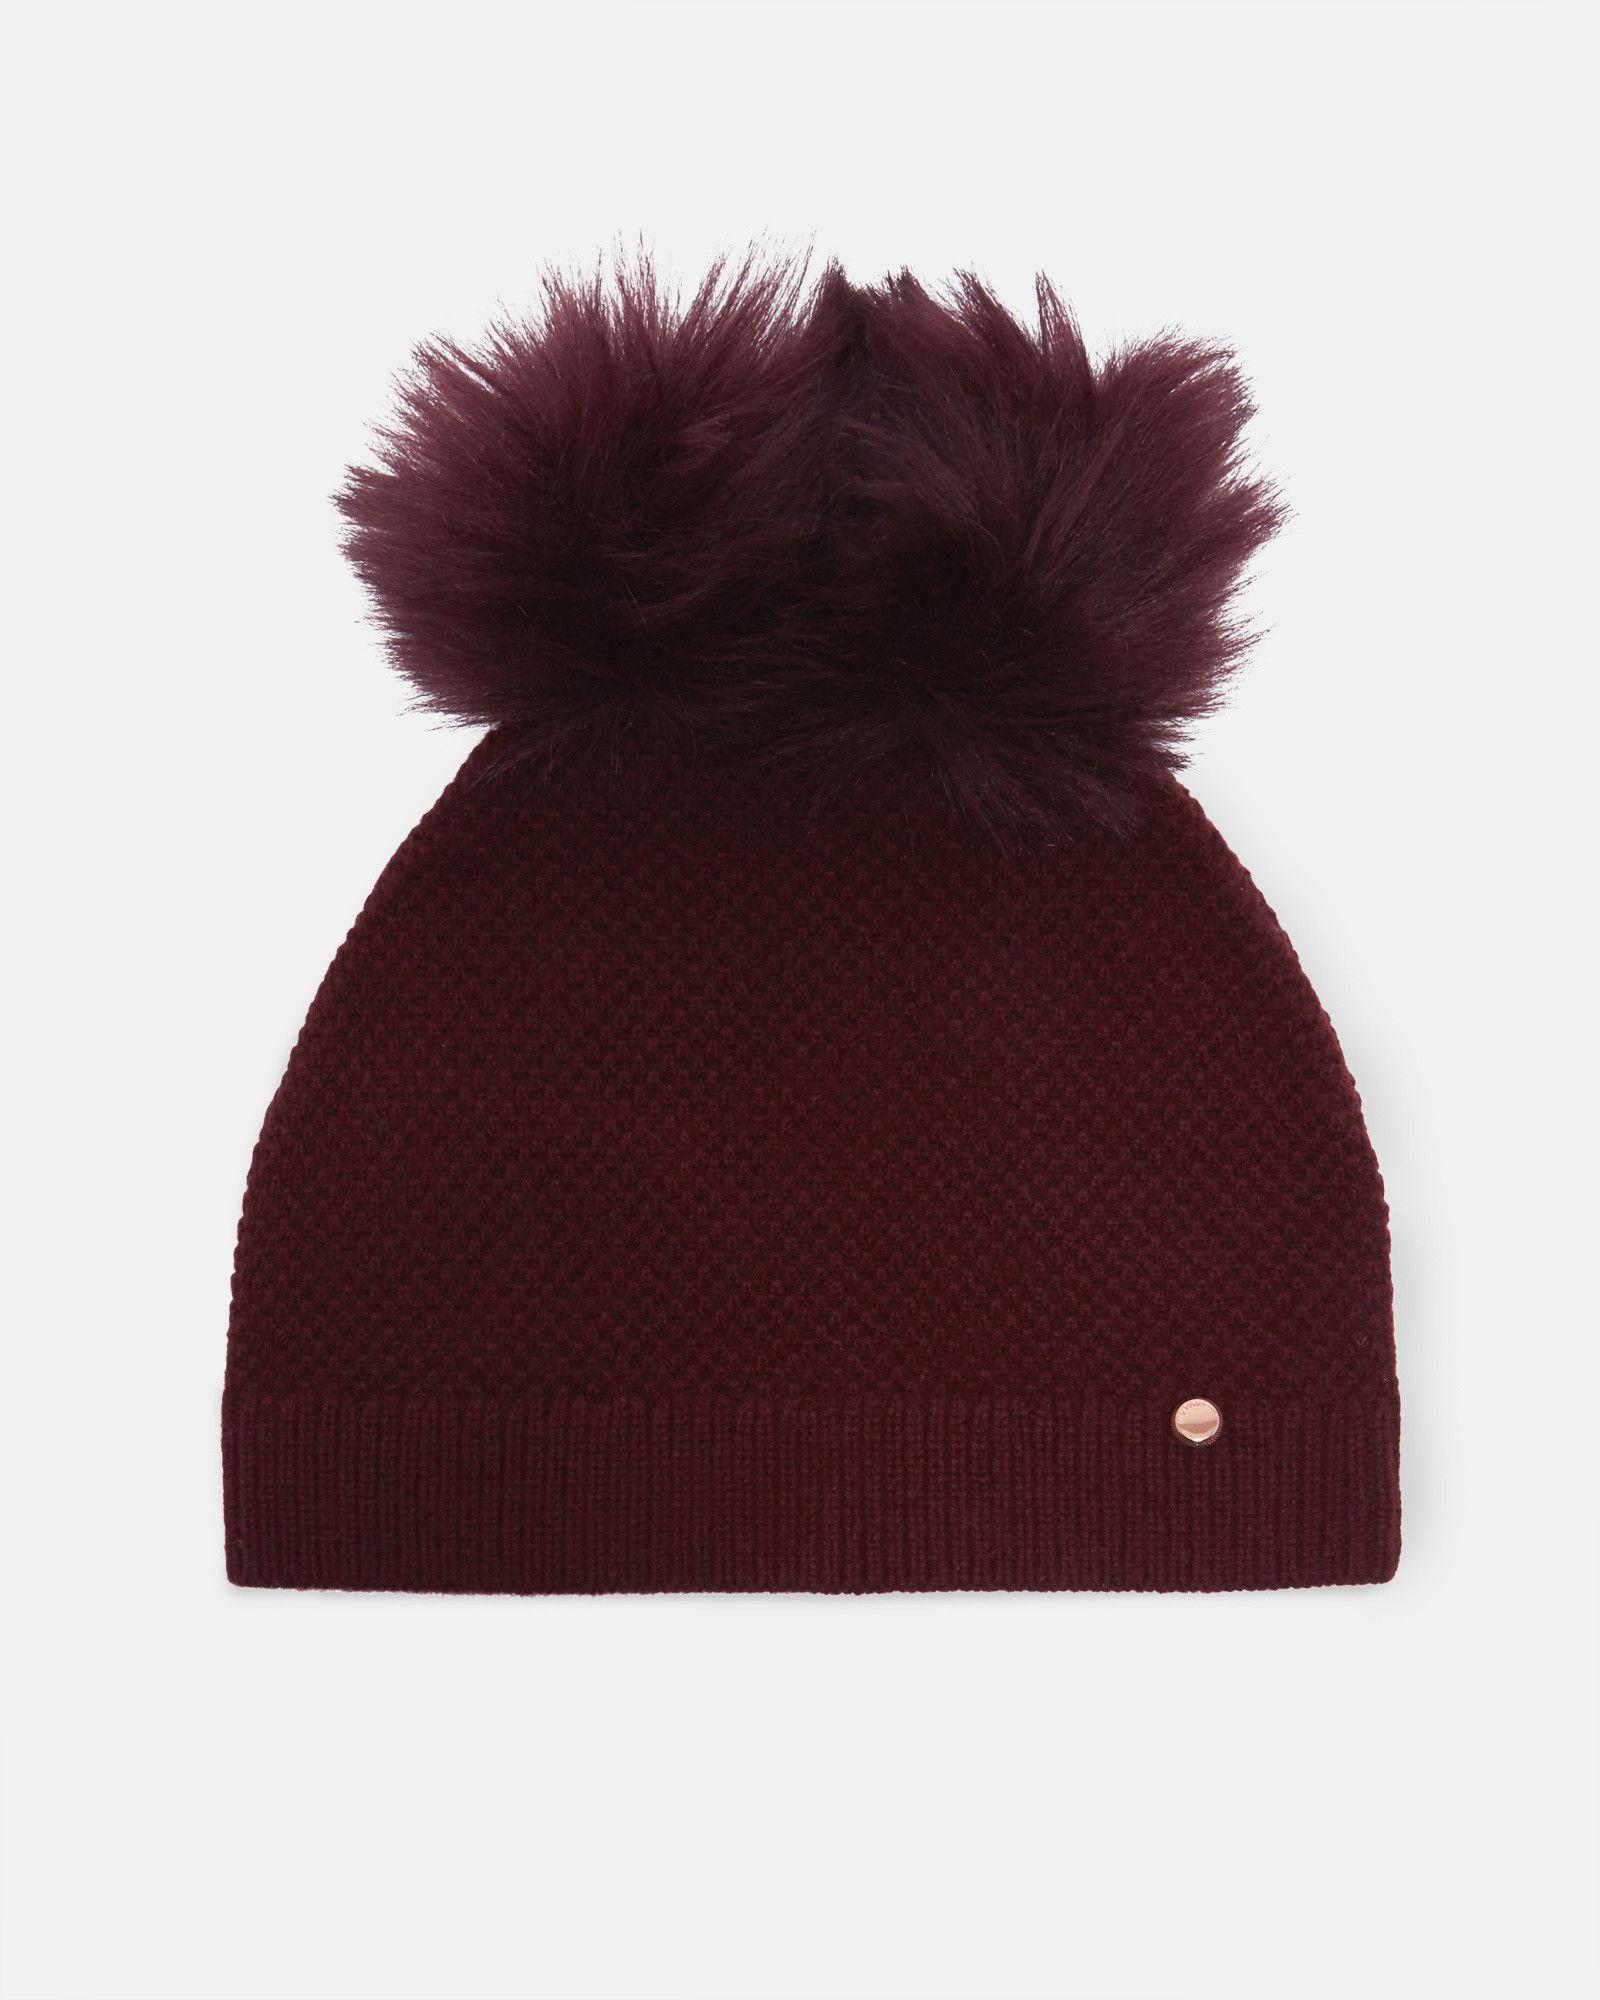 Ted Baker Double pom-pom hat Oxblood  e0c561ef3bc